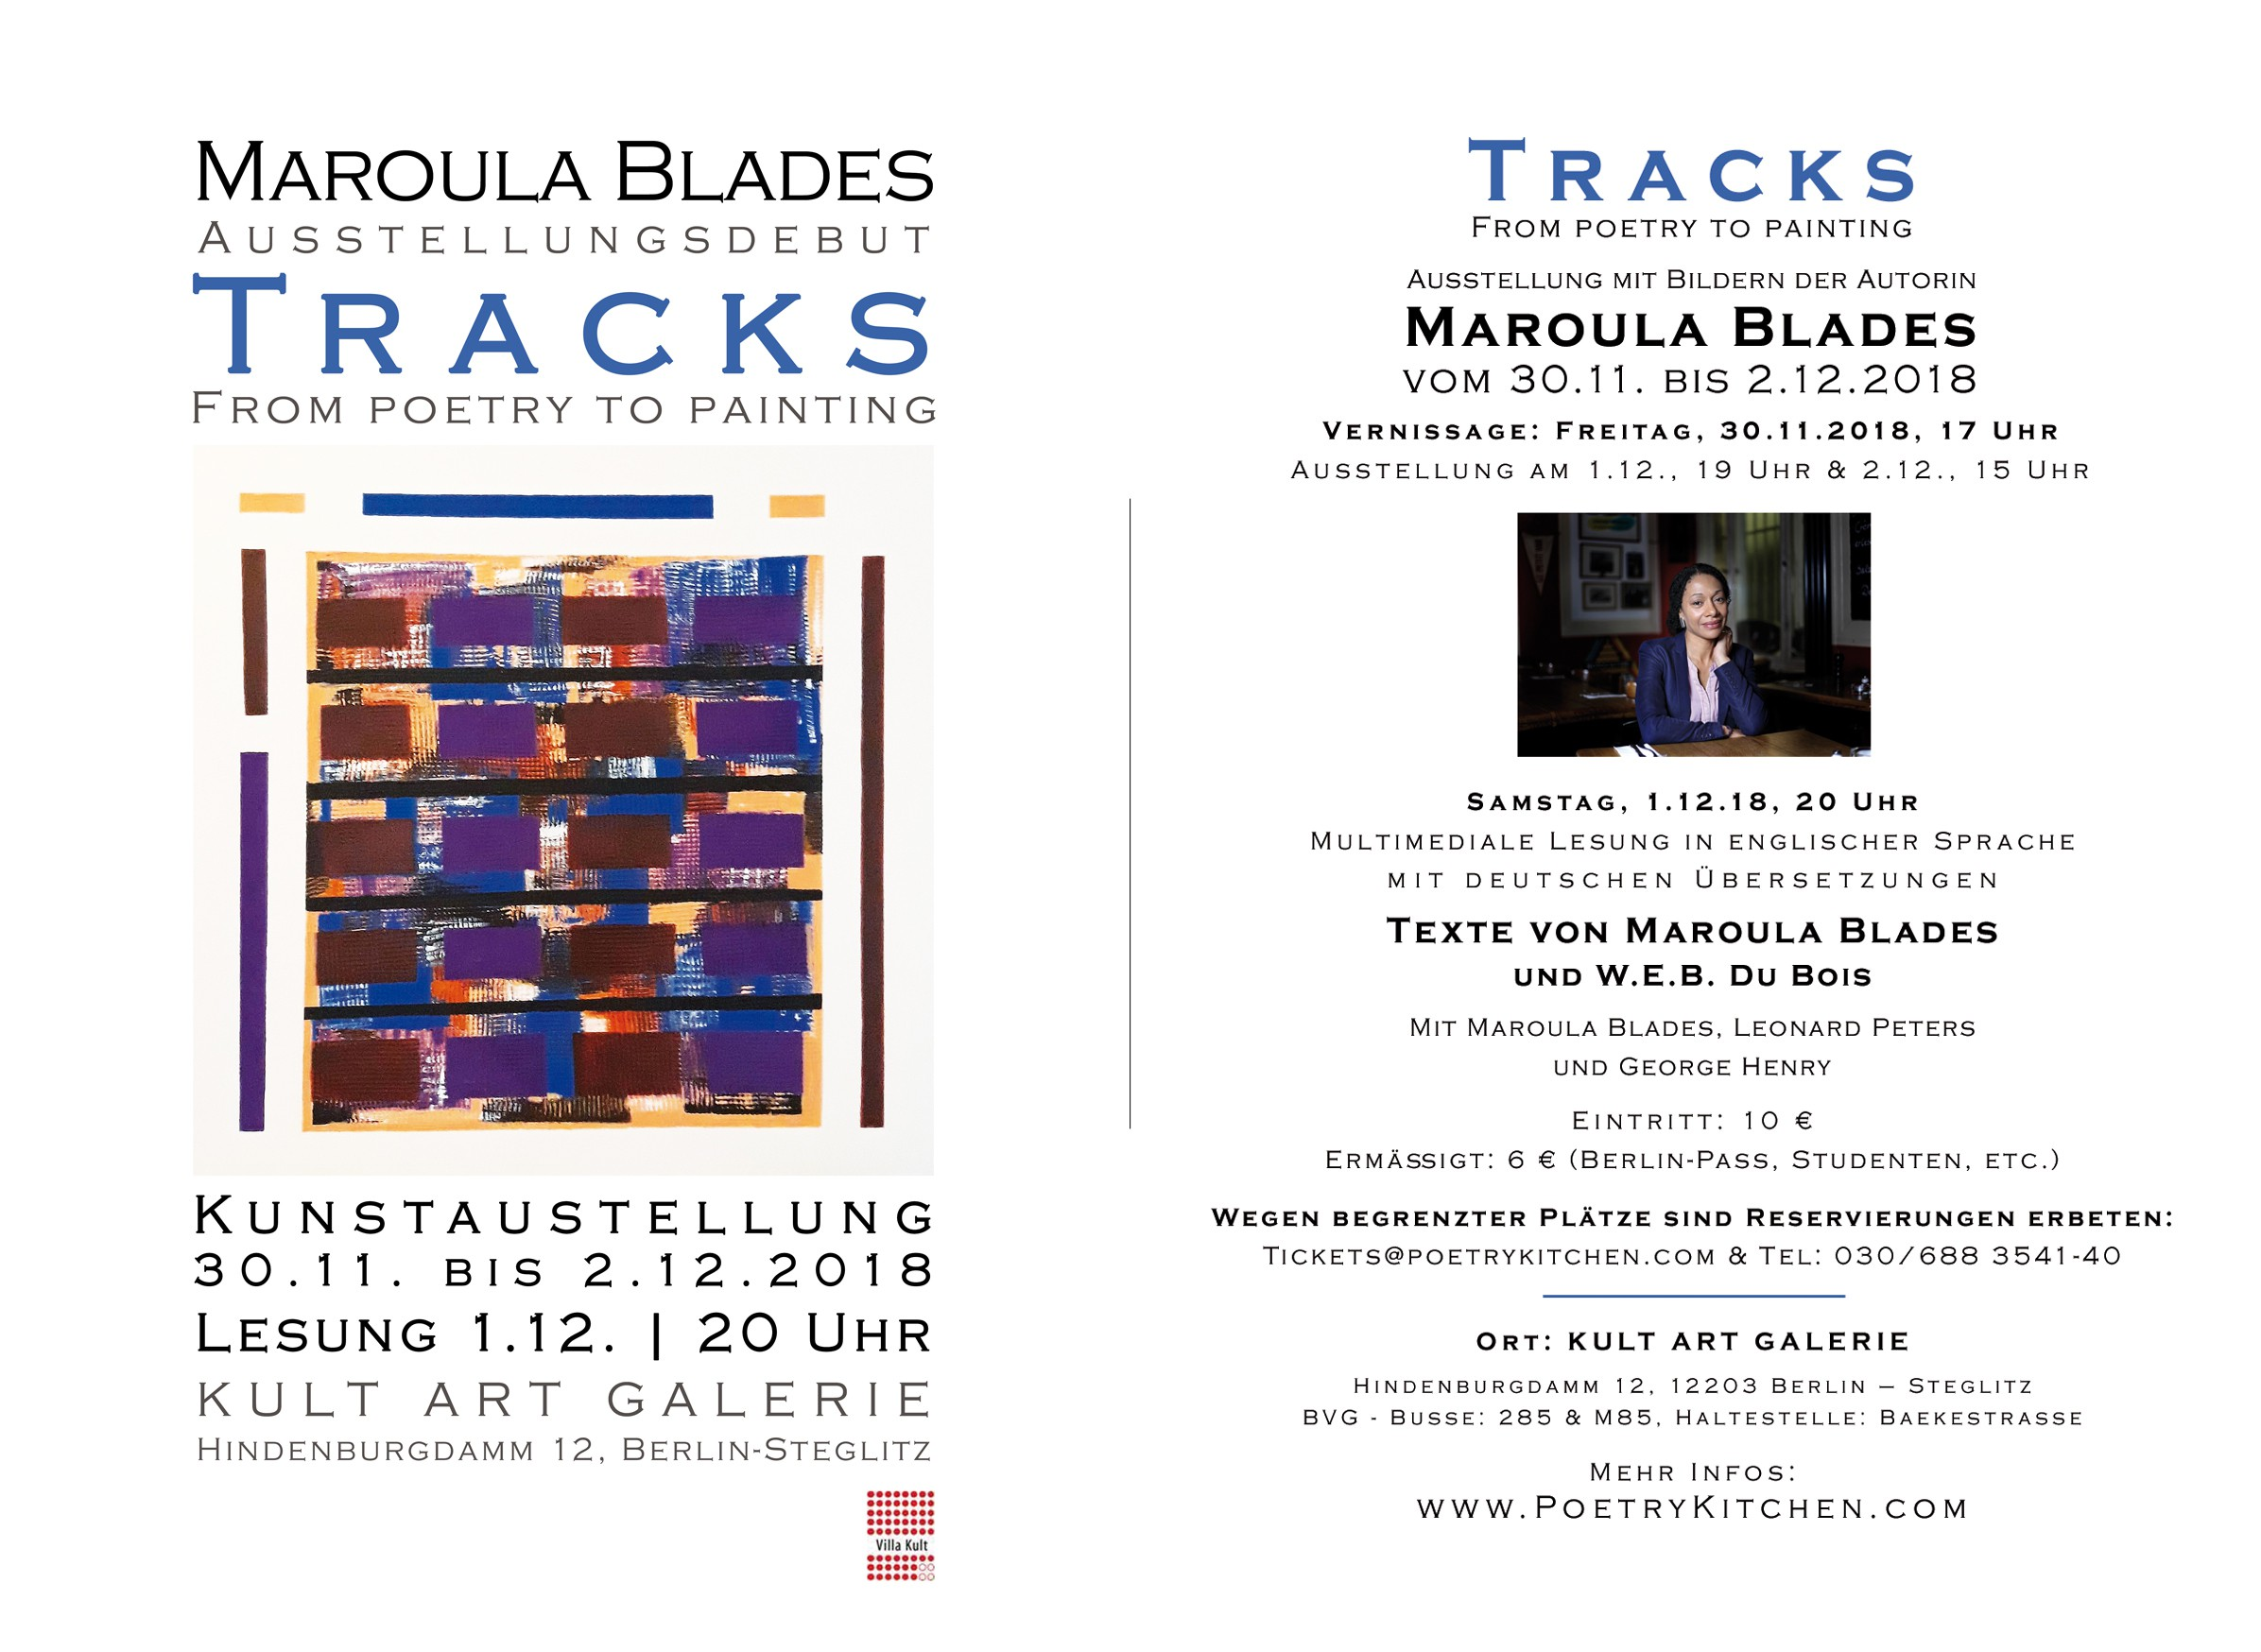 email flyer - Maroula Blades - TRACKS